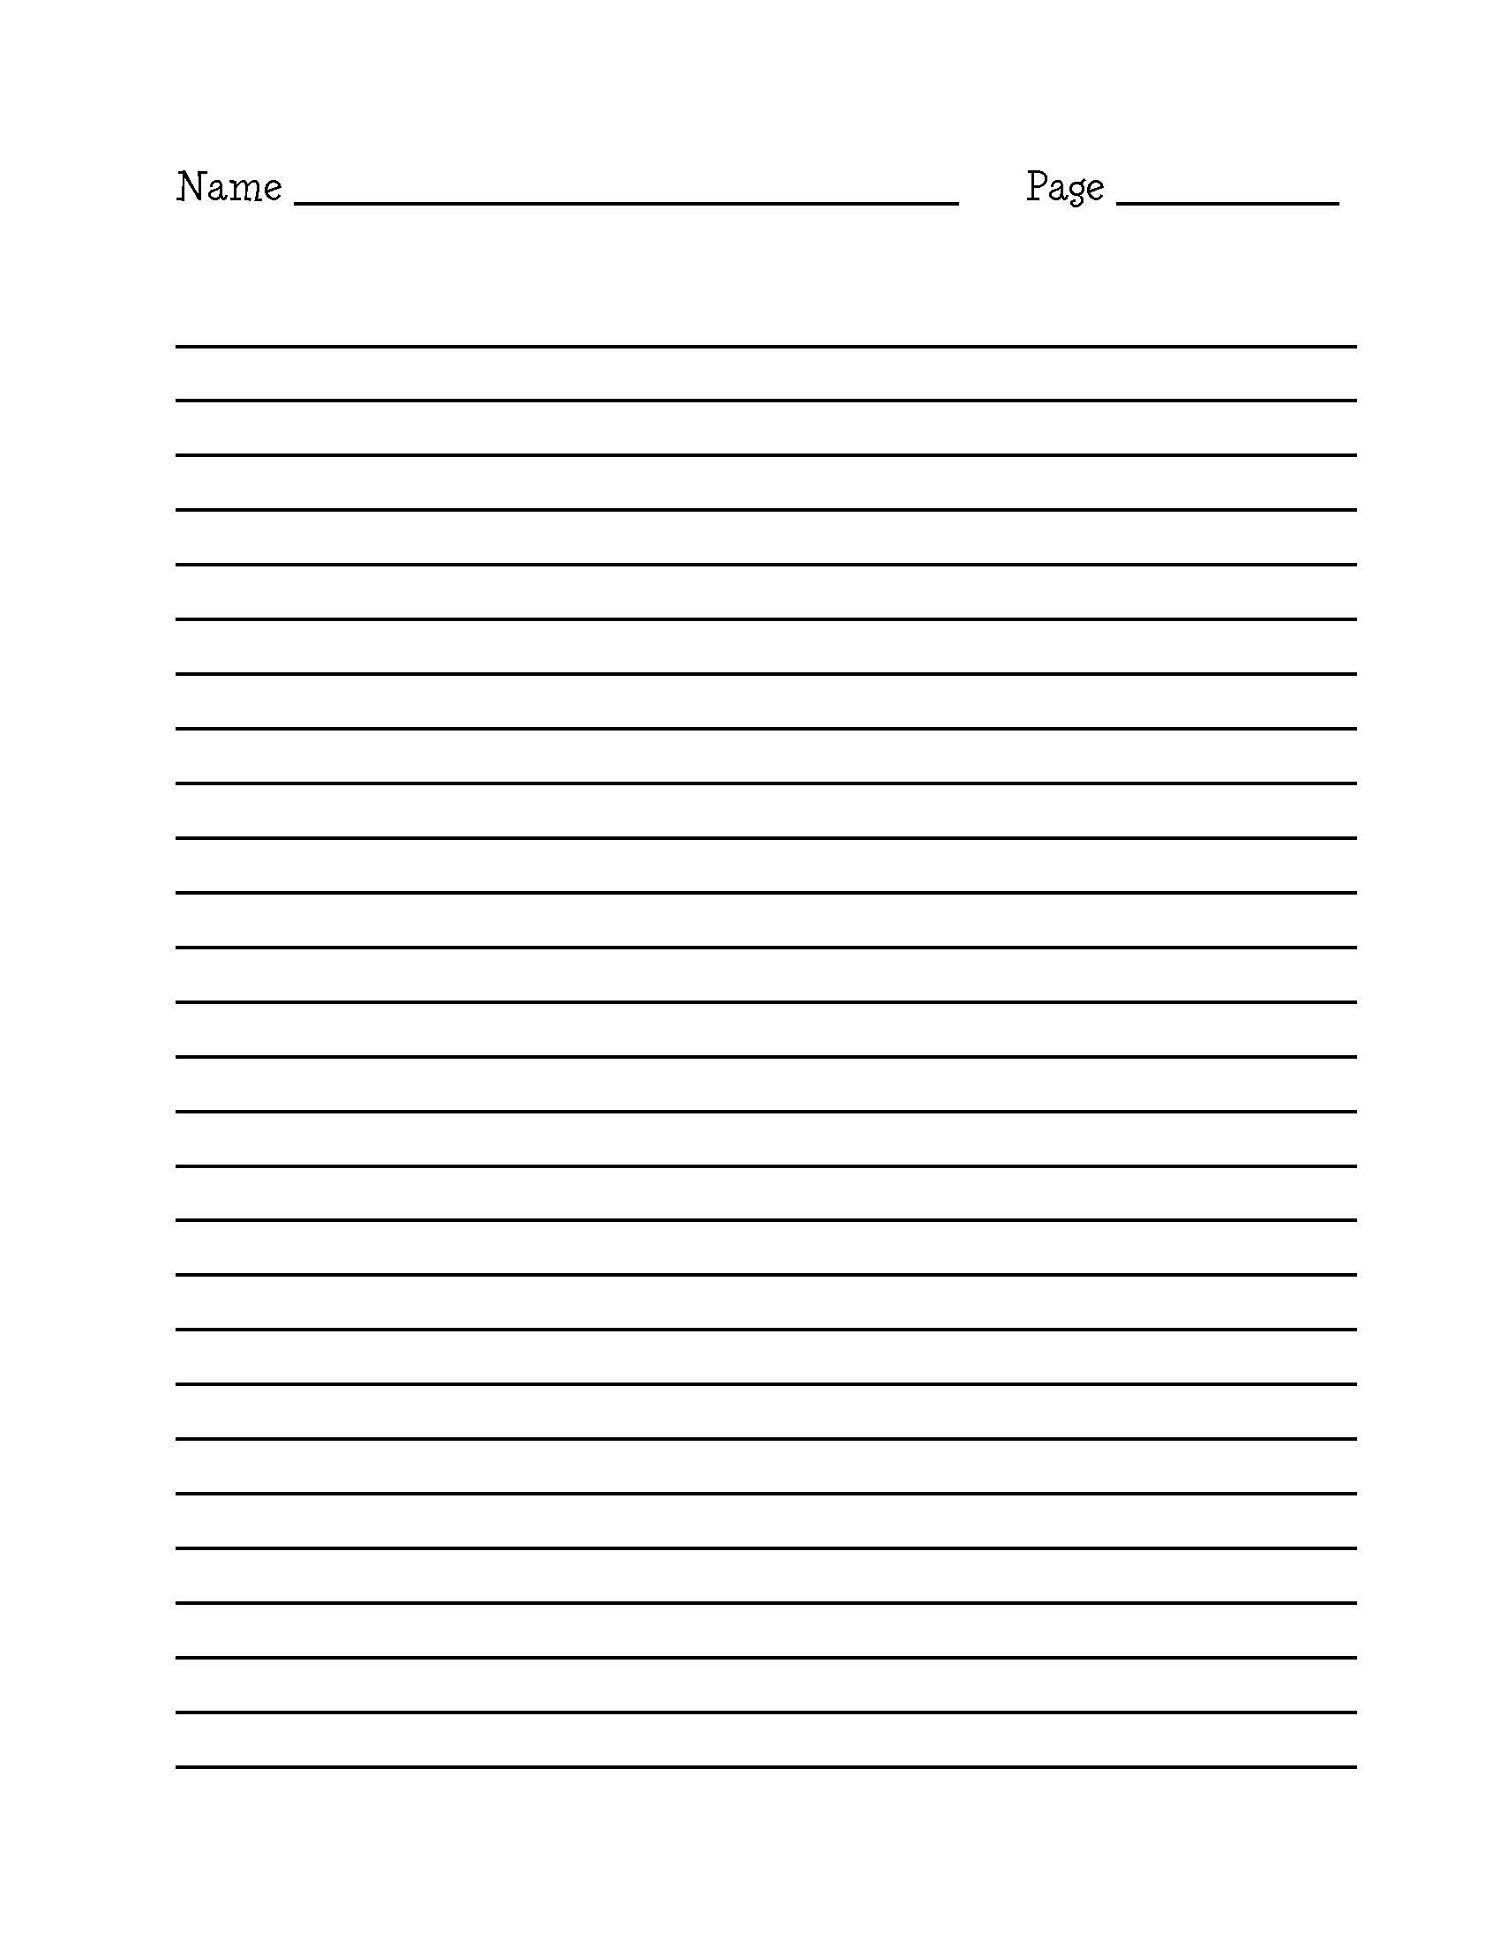 Doc24803508 Print Line Paper Printable Lined Paper JPG and – Write on Lined Paper Online